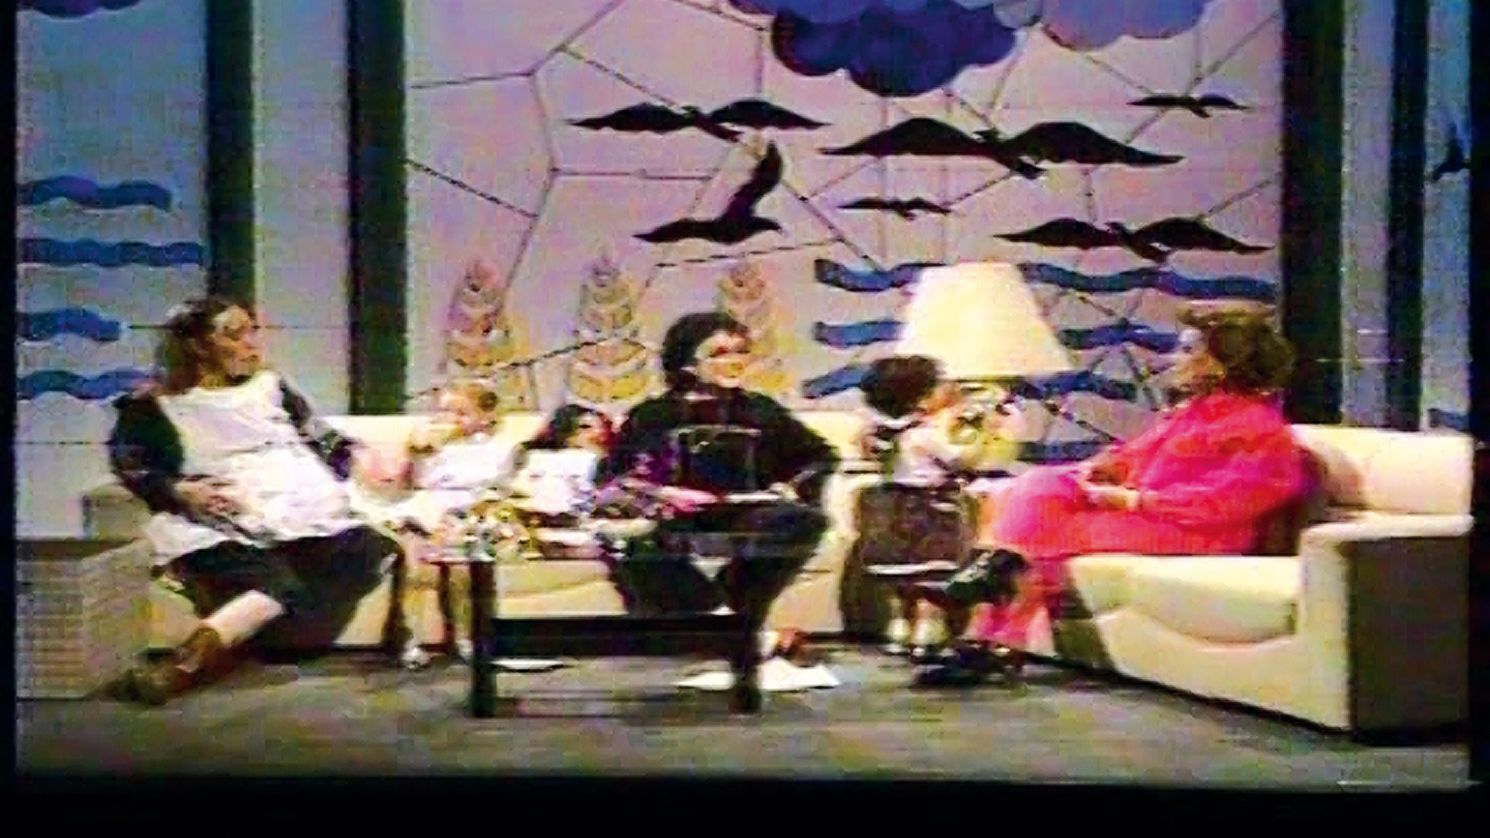 """Maris Bustamante, left, and Mónica Mayer, center, staged performances that made it onto TV talk shows, such as """"A Brazo Partido,"""" from 1983-84."""